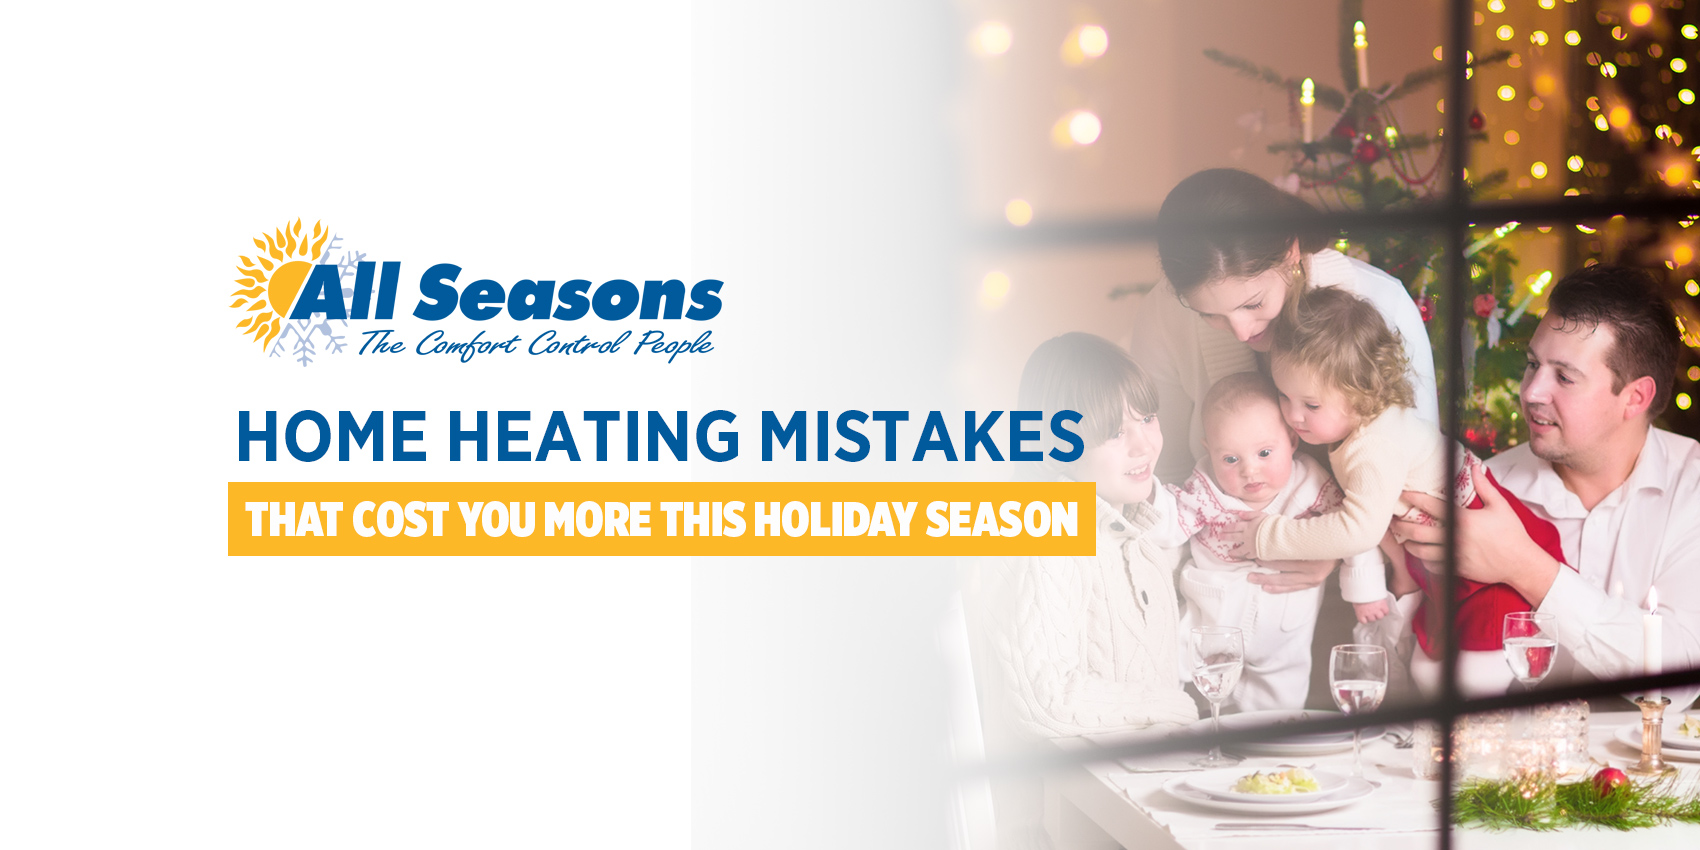 Home Heating Mistakes that Cost You More this Holiday Season